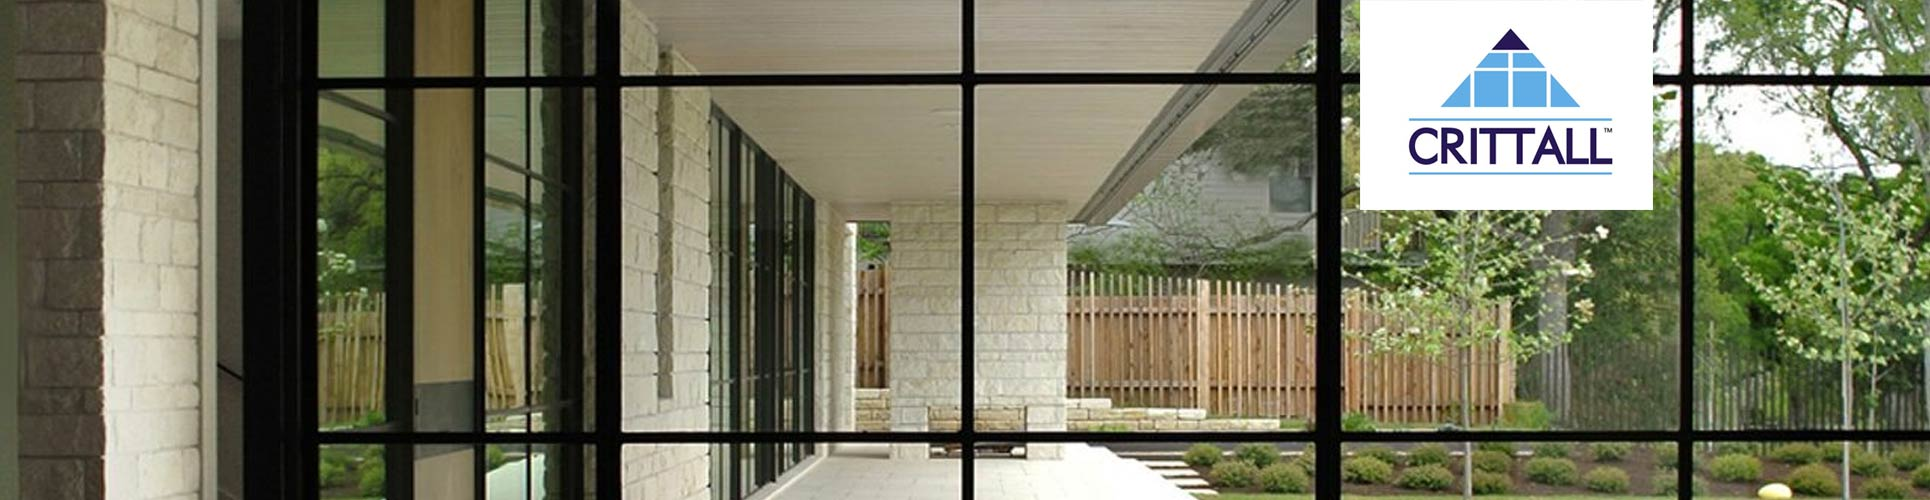 Crittall steel screen installed in a stunning property with a modern design.